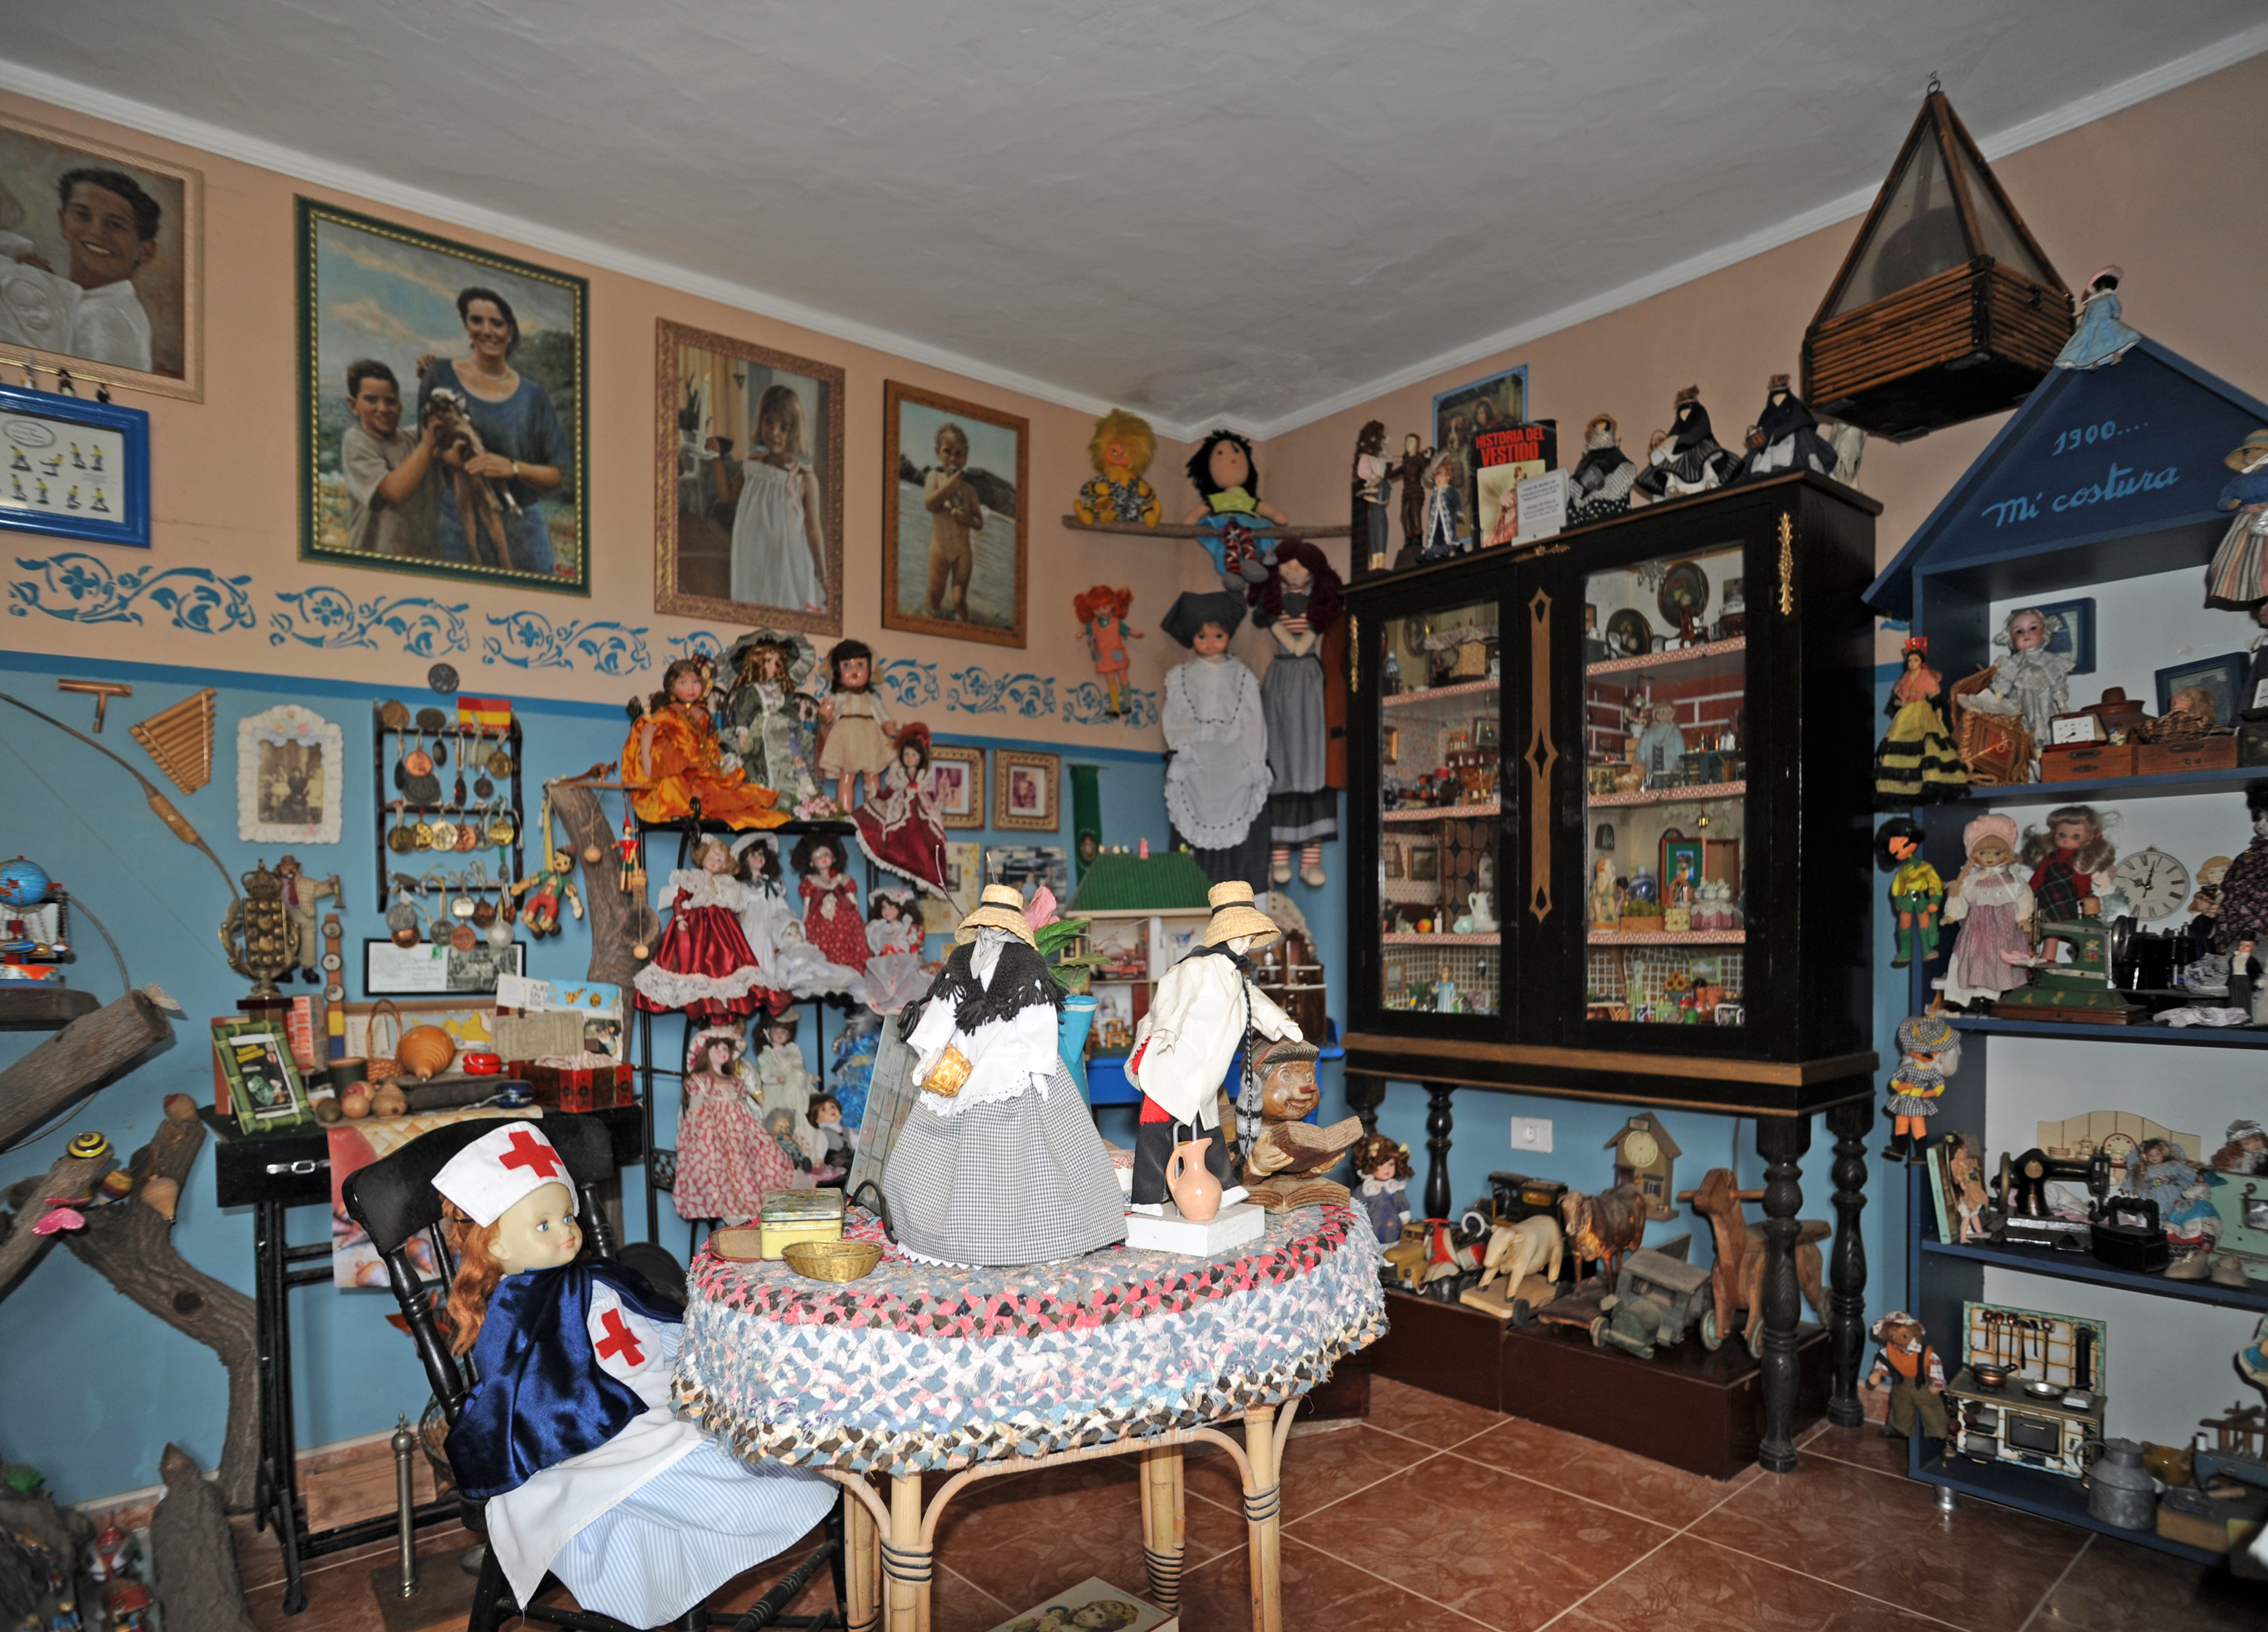 The Ethnographic Museum Tanit In San Bartolomé Lanzarote Doll Collection Click To Enlarge